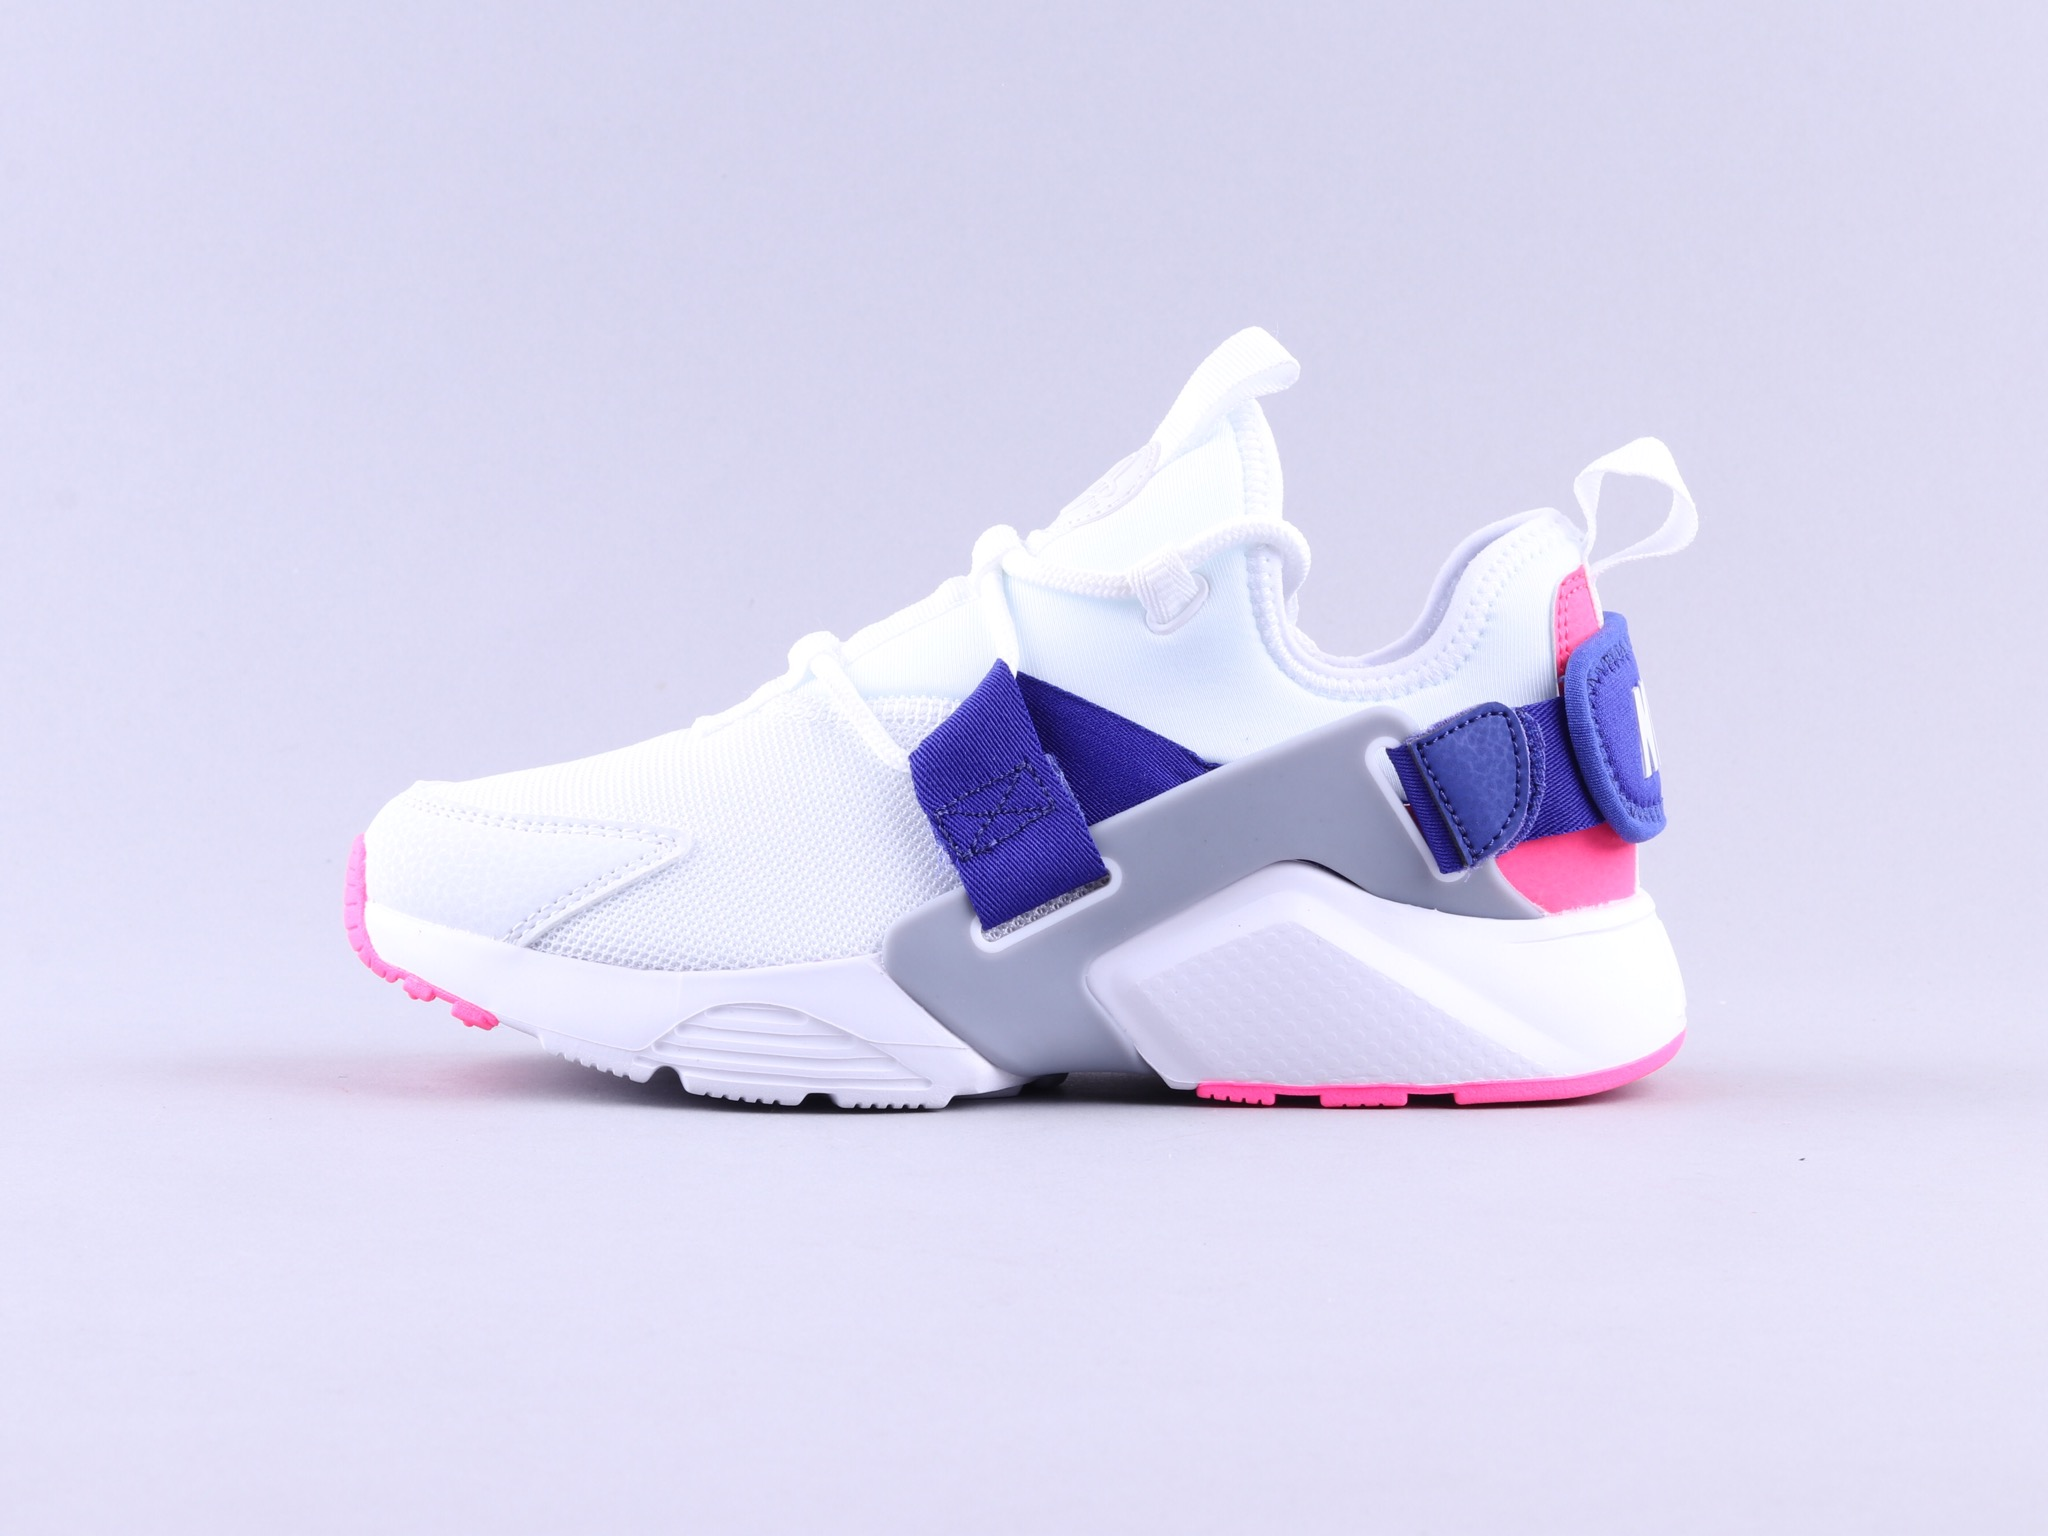 Nike Air Huarache City Low  华莱士五代 白彩虹 AH6804-101